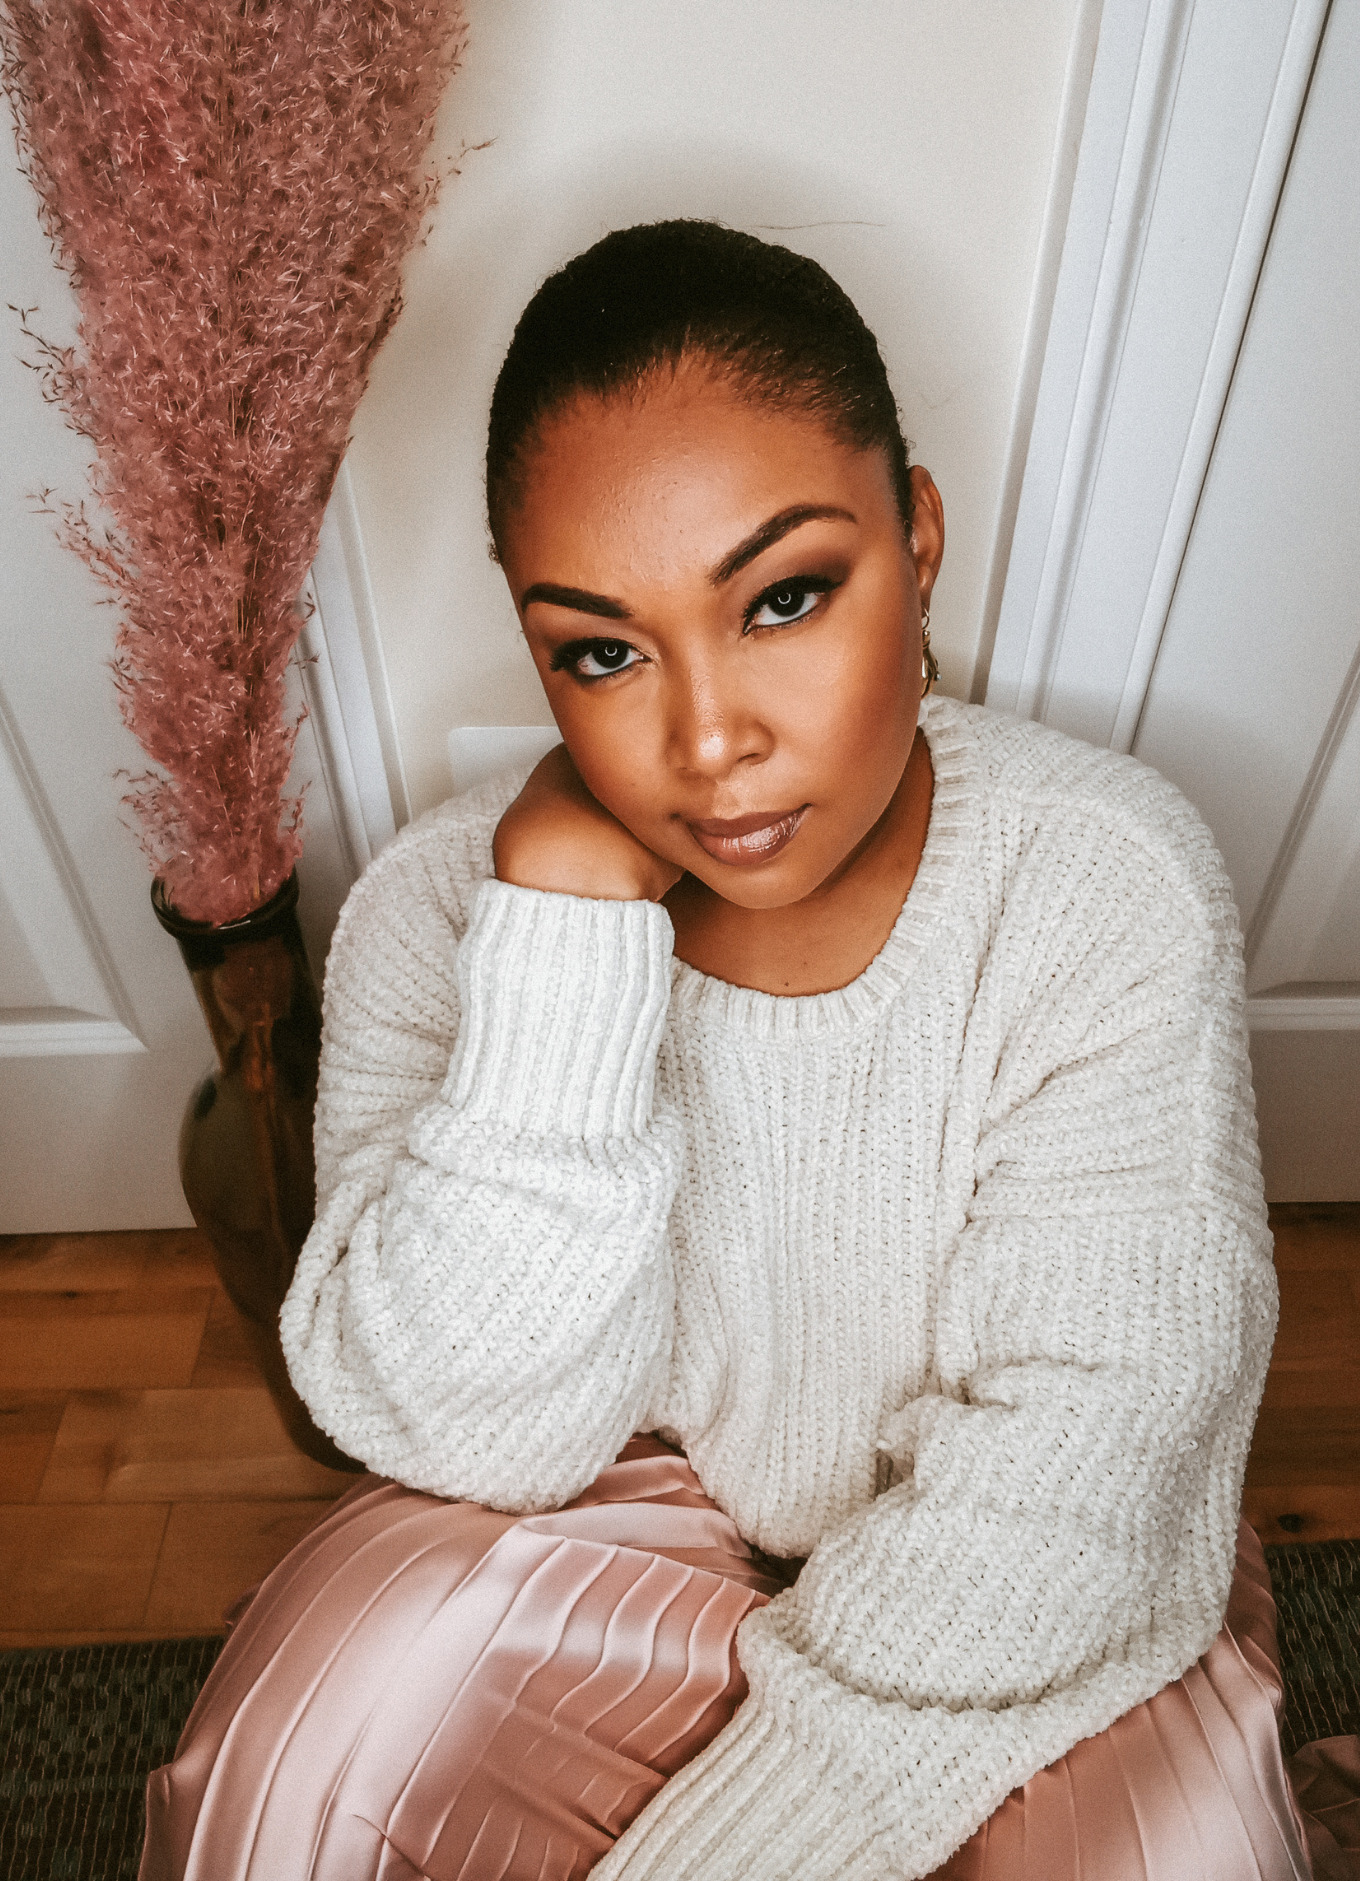 Black woman wearing pink skirt and white sweater sits on the ground looking somber.